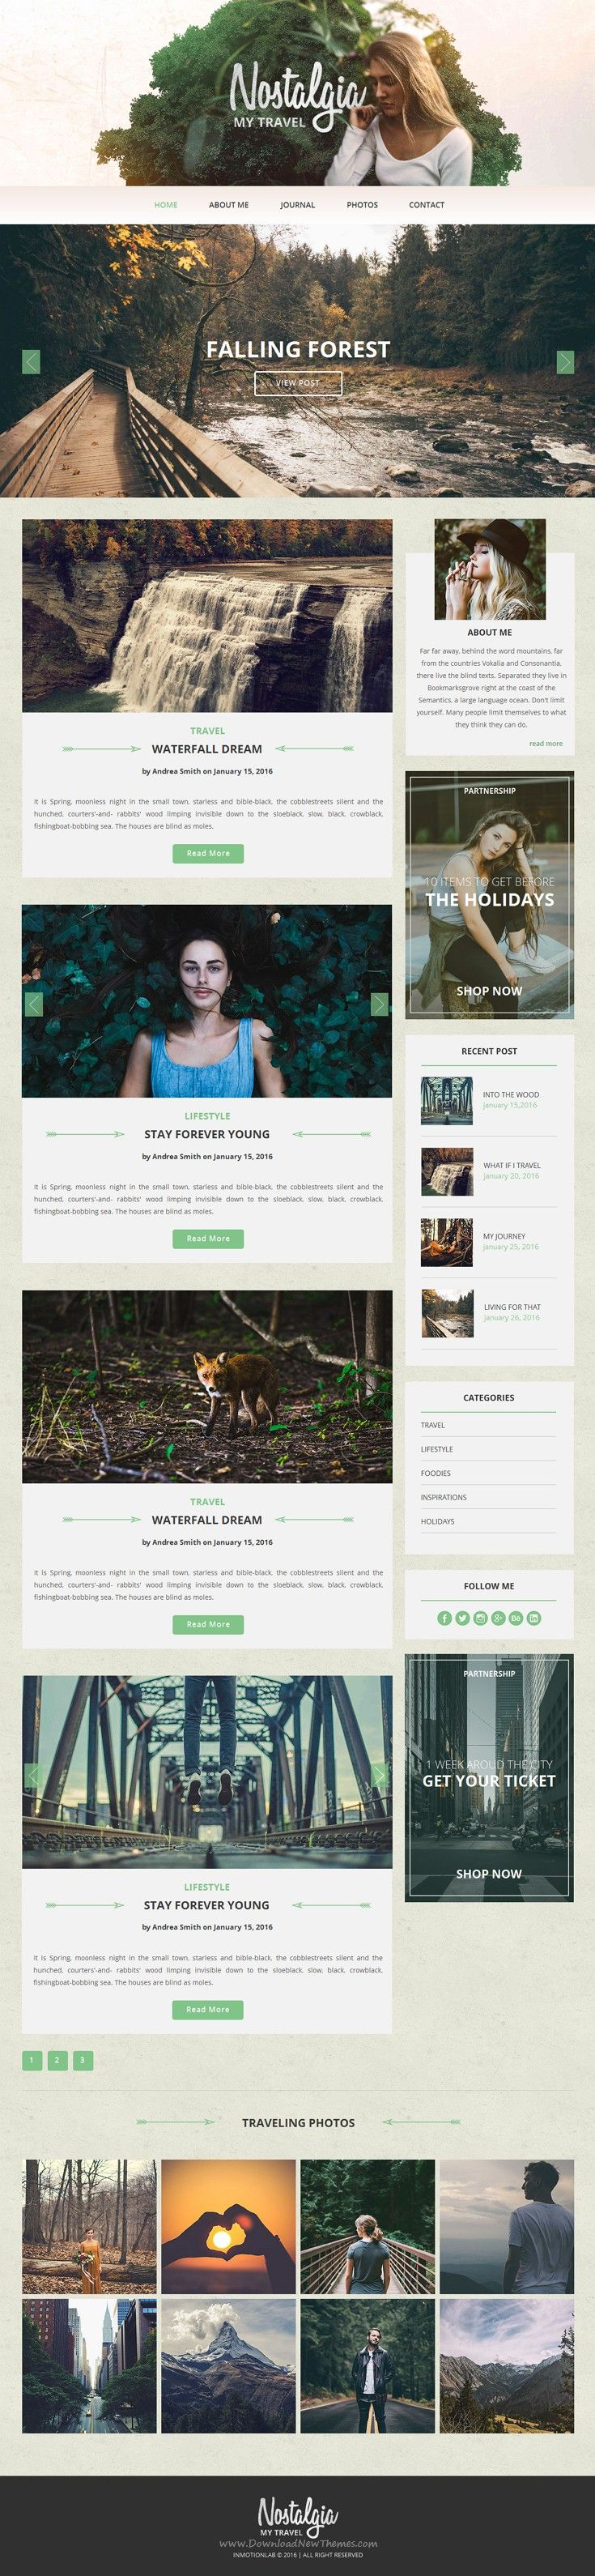 Nostalgia is wonderful Adobe Muse #template for multipurpose fashion, food and #travel #blogs. Download Now!